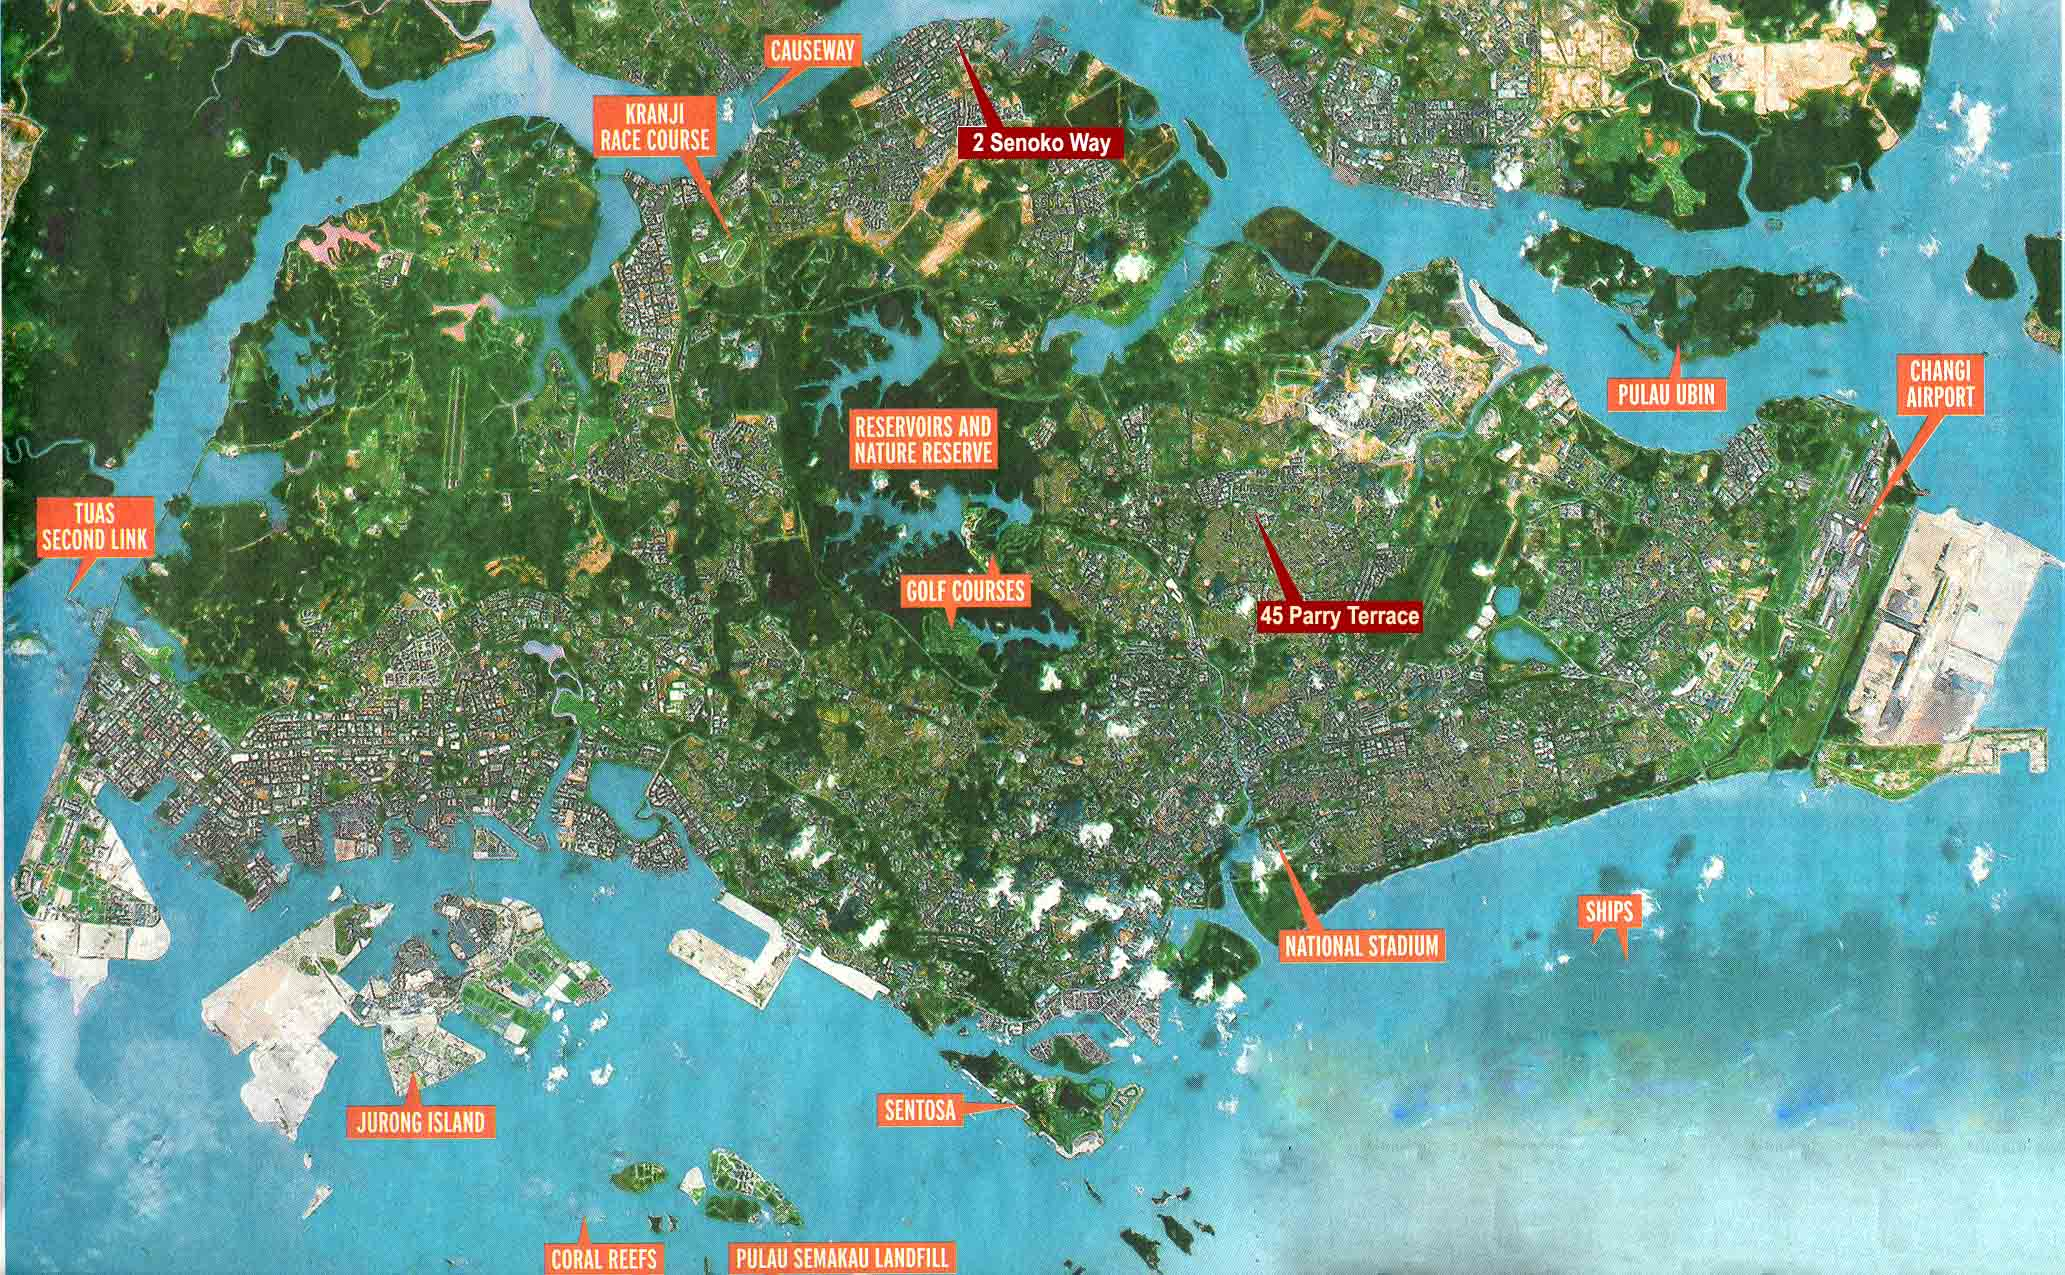 Large singapore city maps for free download and print high detailed map of singapore city 2 gumiabroncs